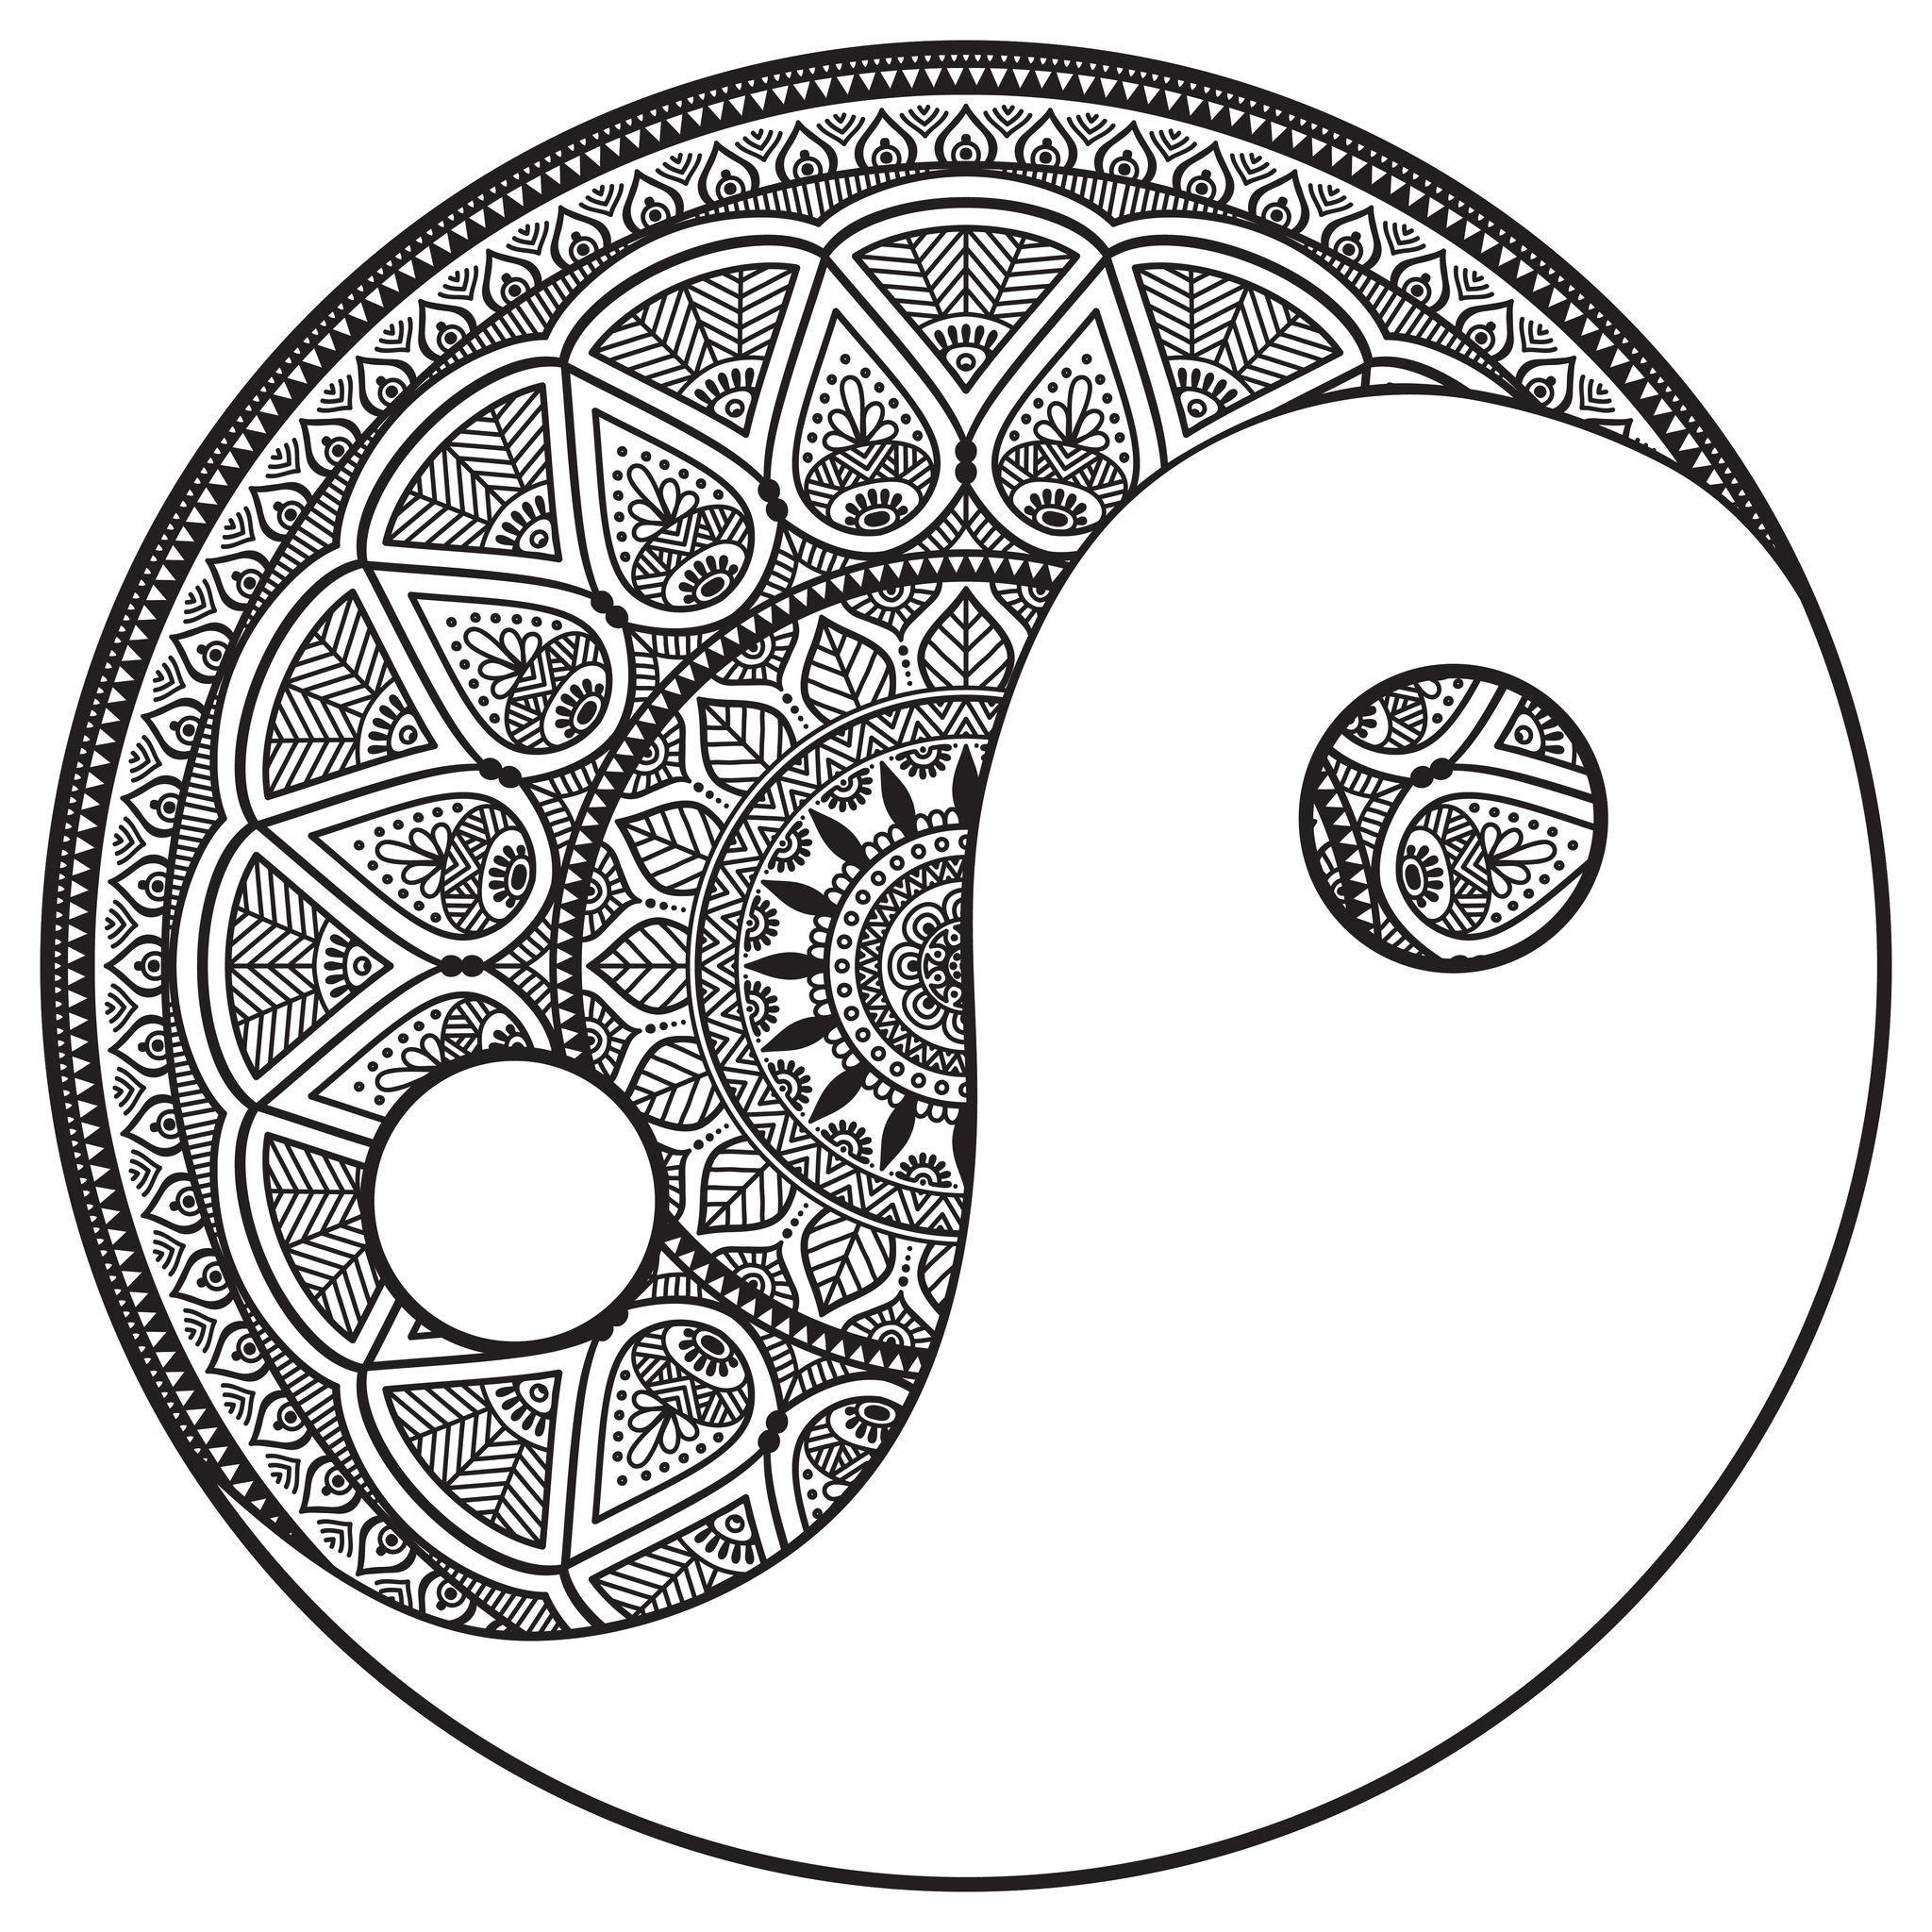 Mandala Yin and Yang to color by Snezh | Mandalas - Coloring pages ...